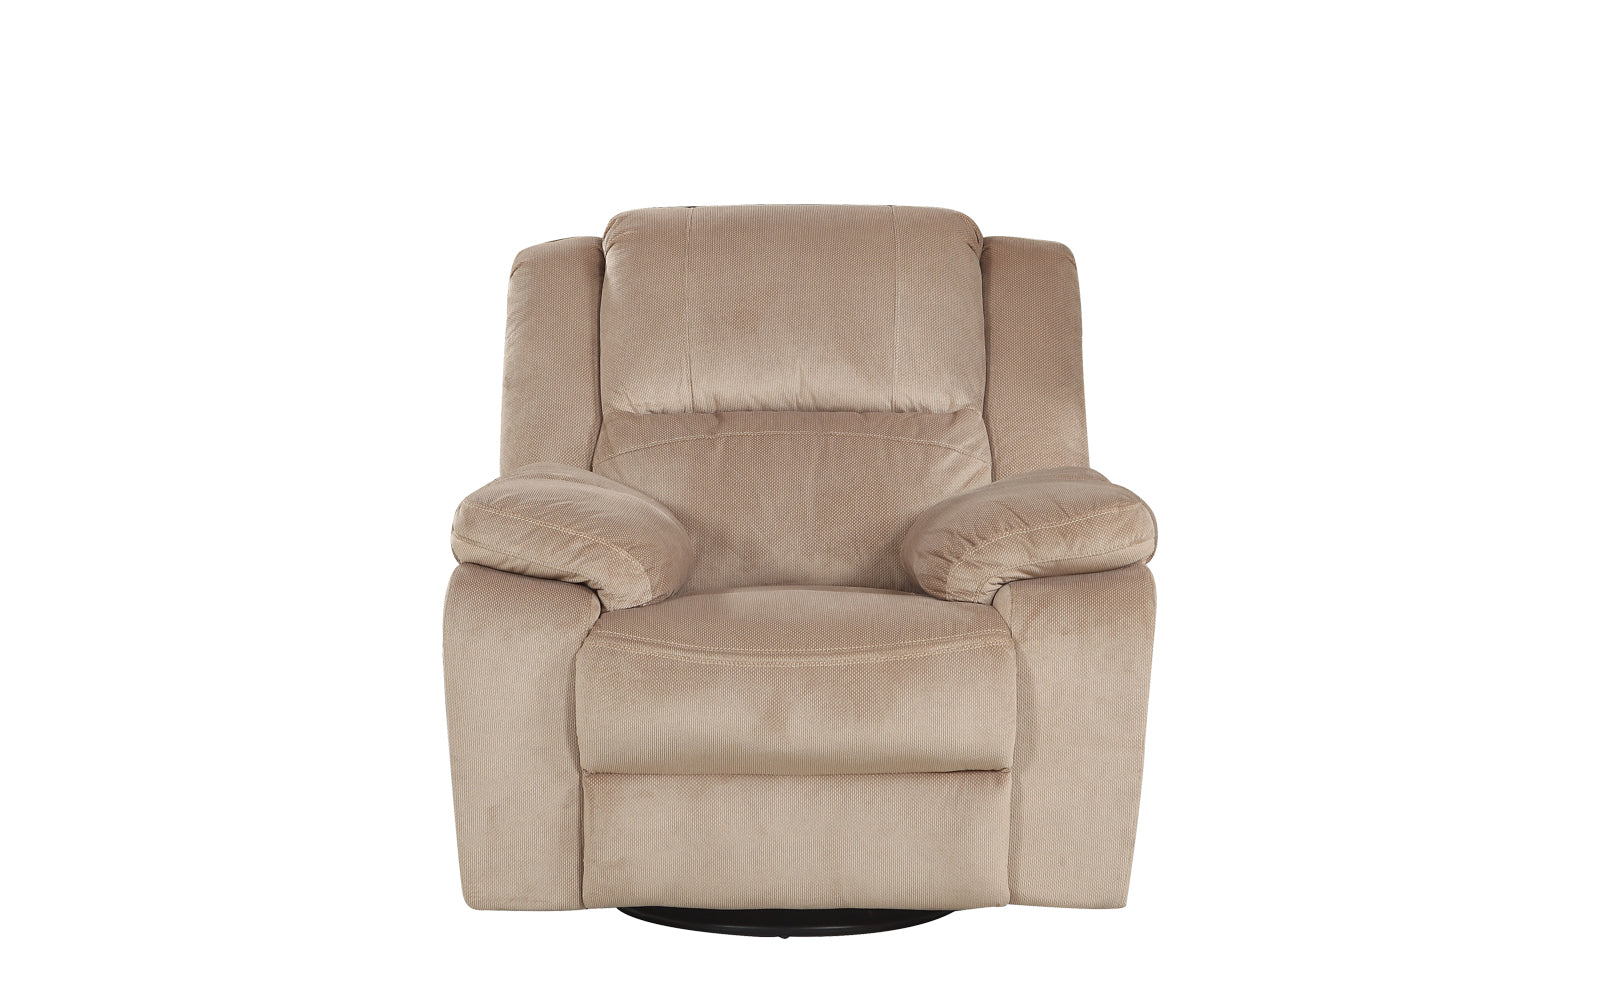 ... Asturias Traditional Classic Microfiber Rocker and Swivel Recliner Chair Beige ...  sc 1 st  Sofamania & Asturias Microfiber Rocking Swivel Recliner Chair | Sofamania.com